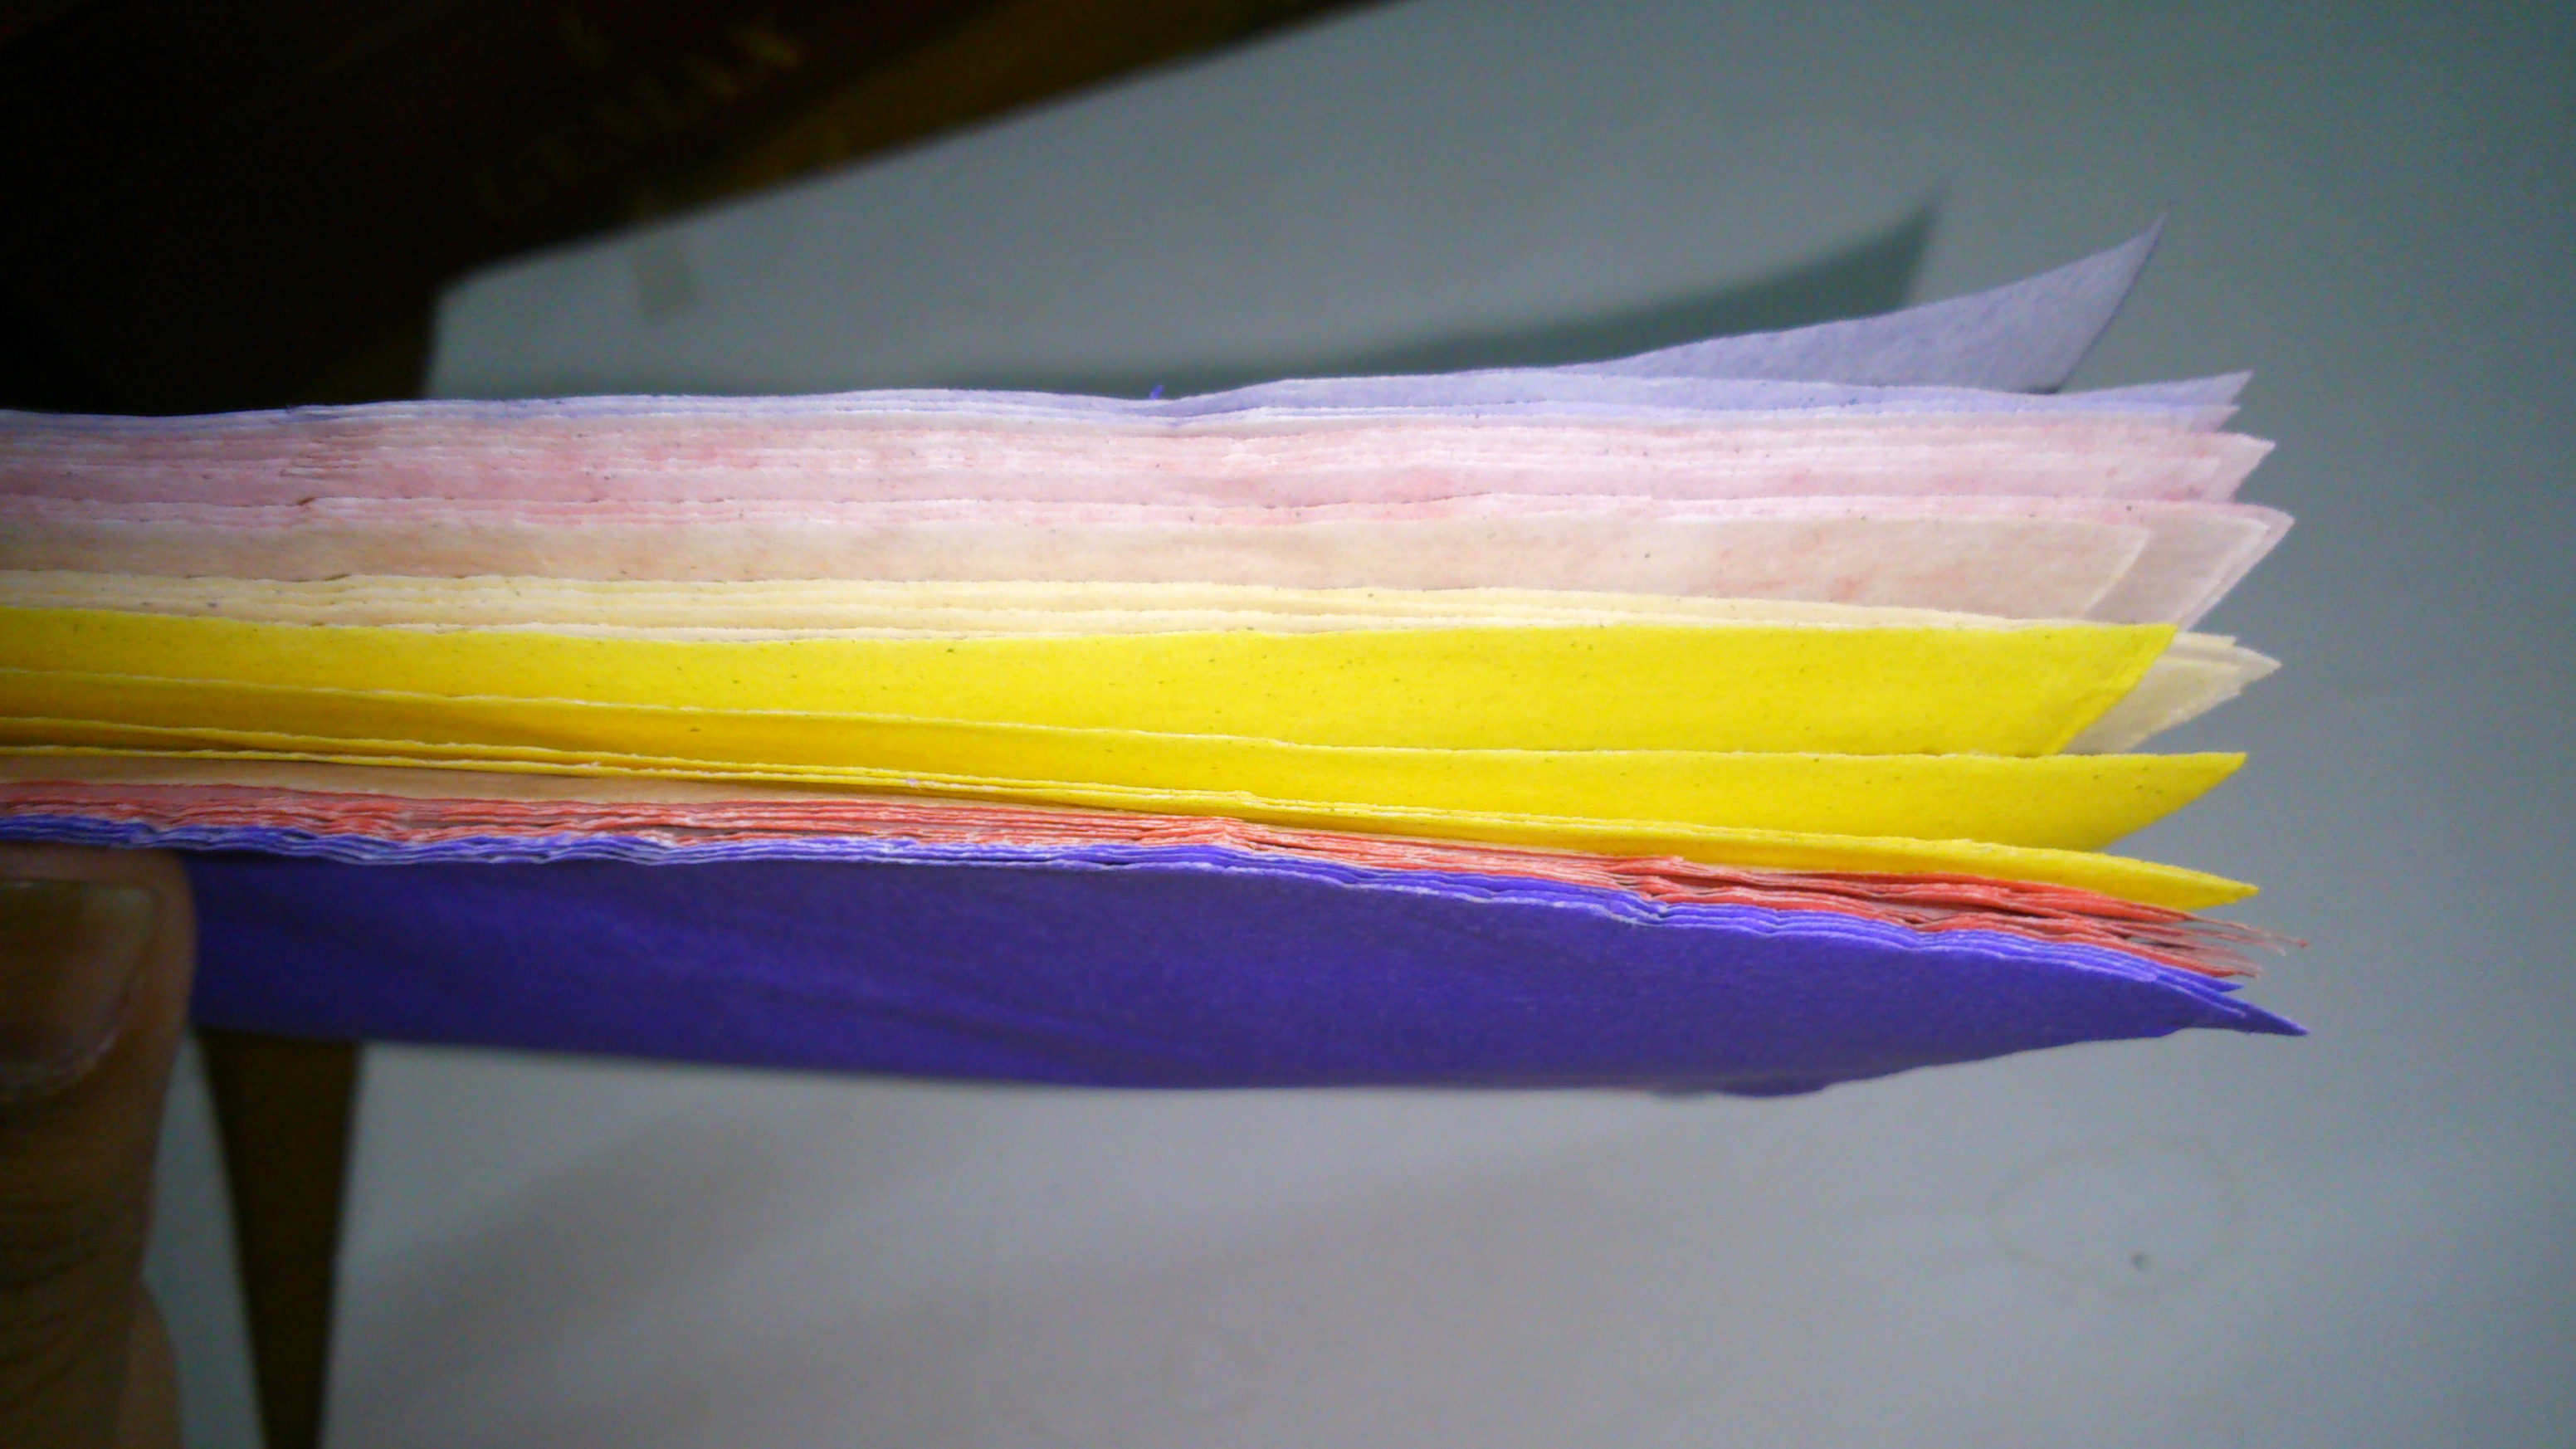 Picture of 9.Now Make the Third Notebook With Multiple Colourful Pages and Using Duct Tape of 2 Different Color